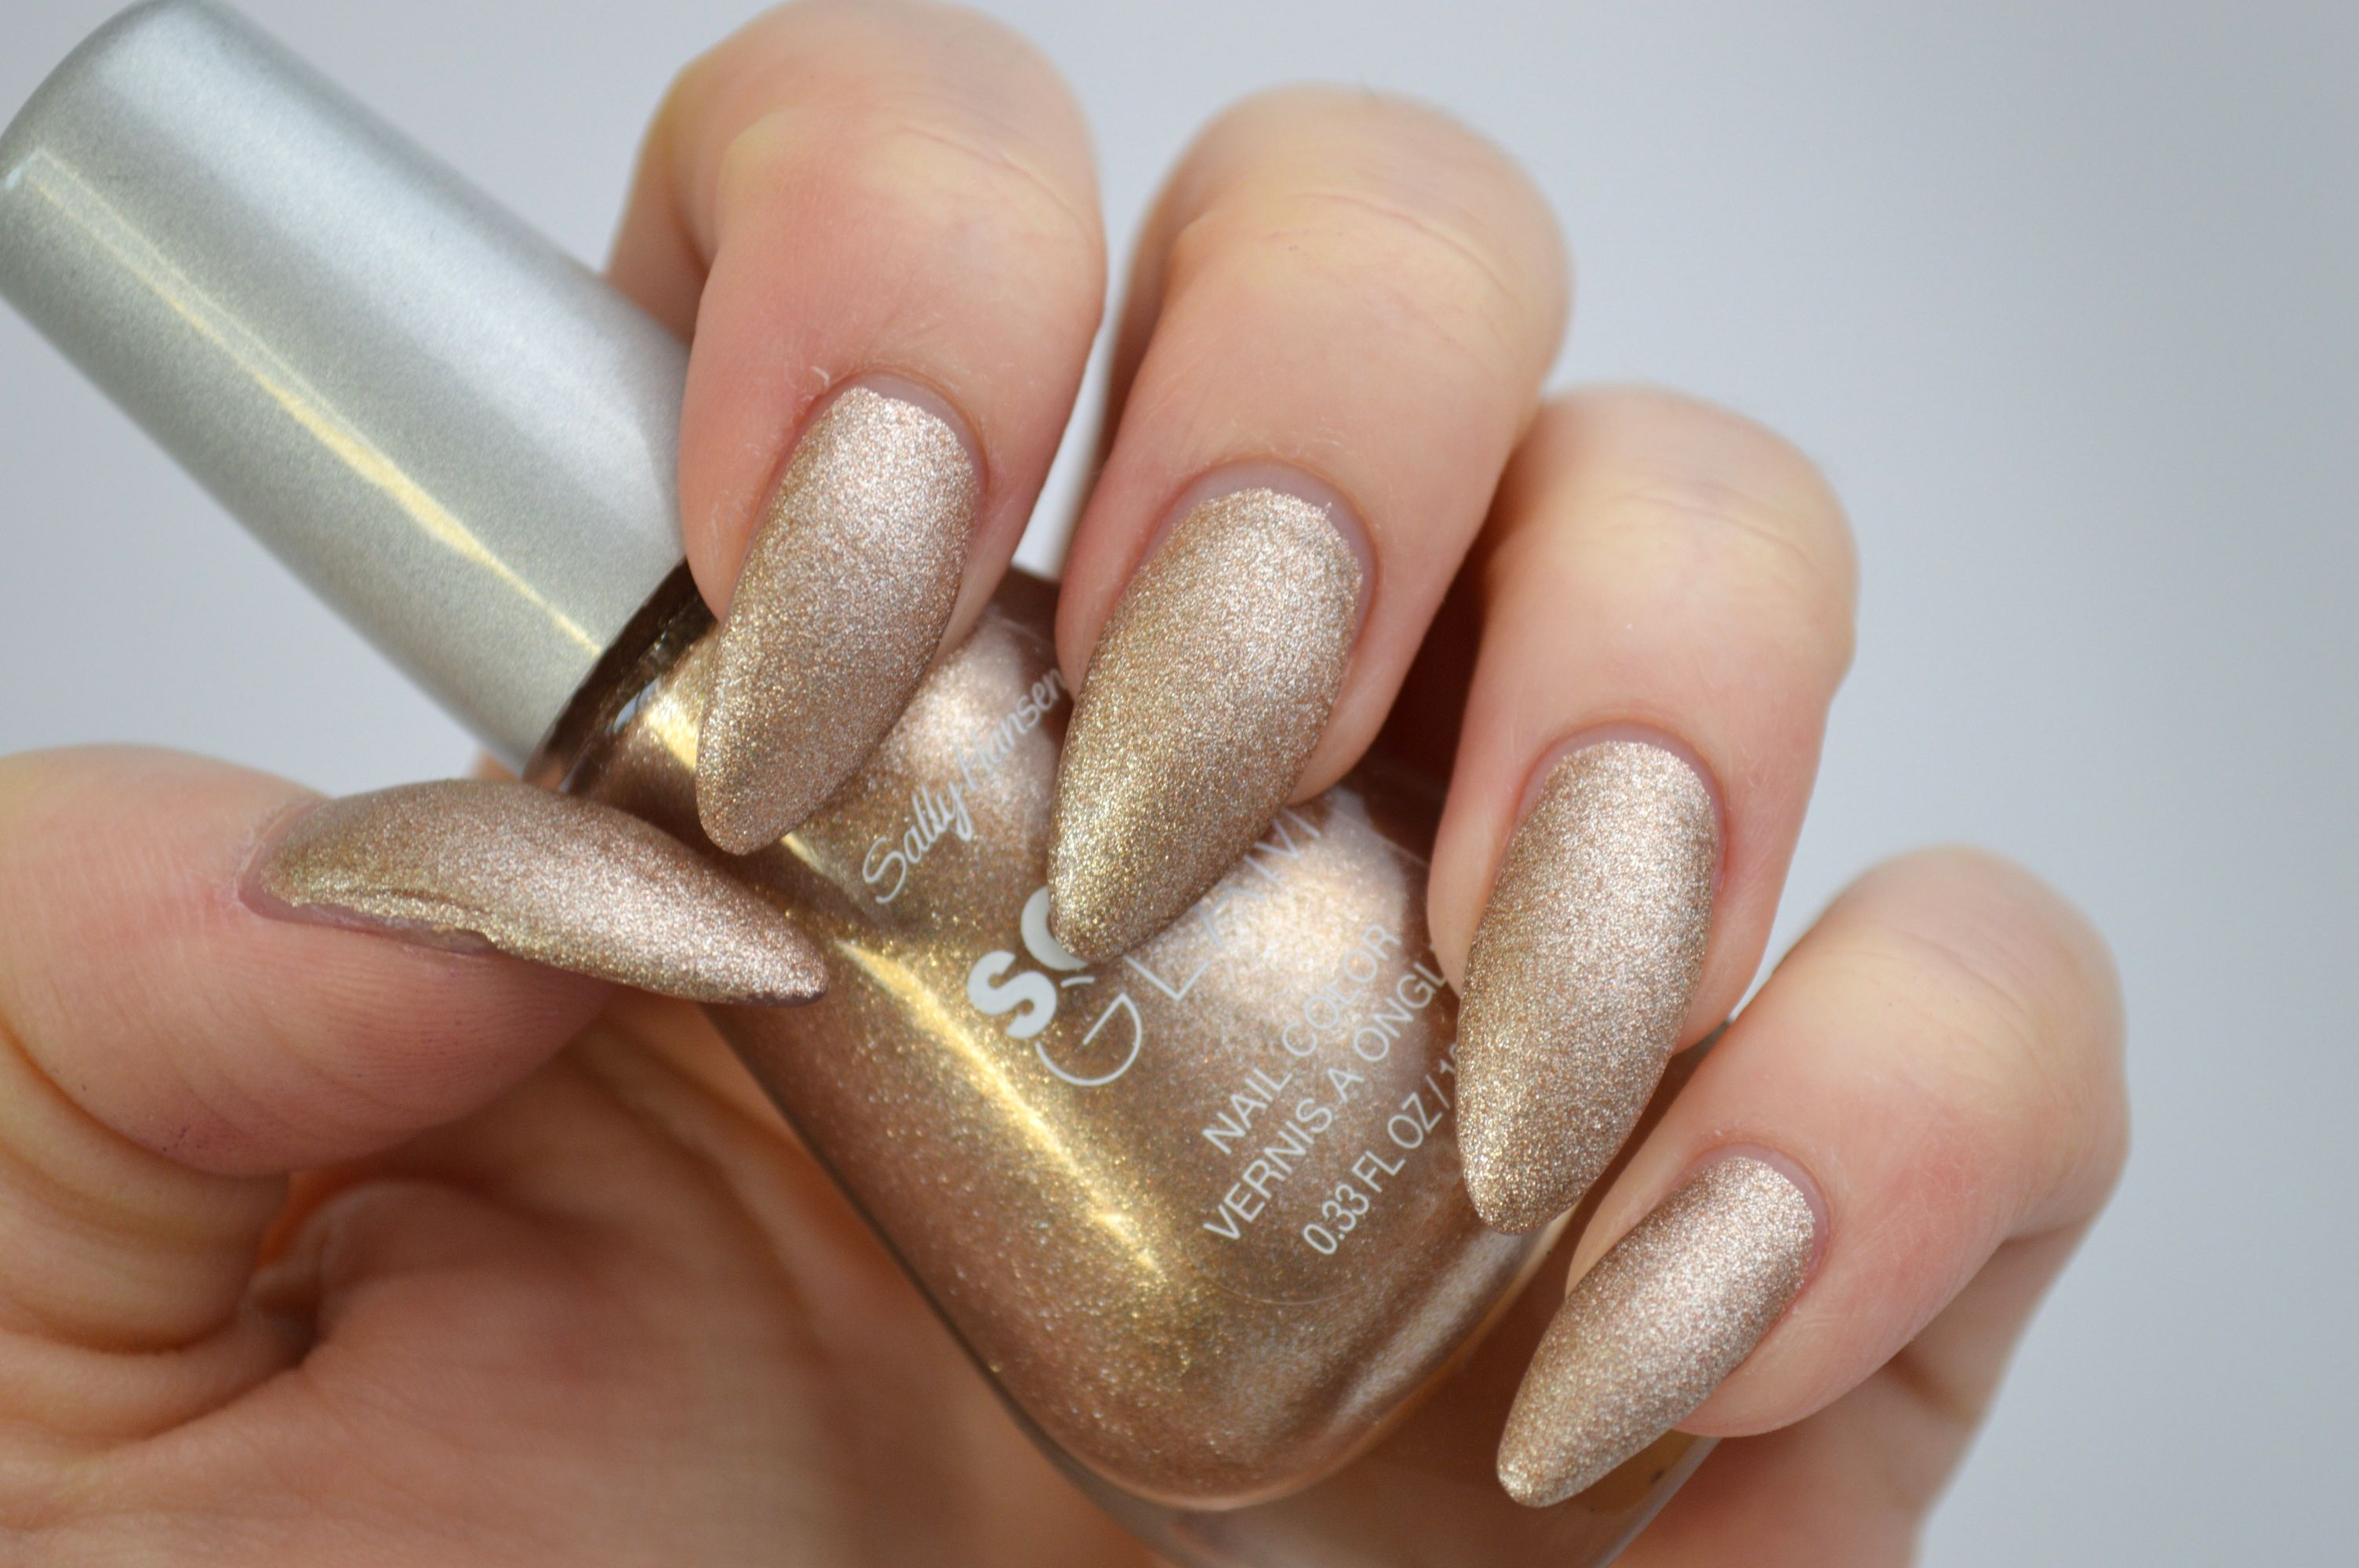 Sally_Hansen_Satin_Glam_Go_Gold